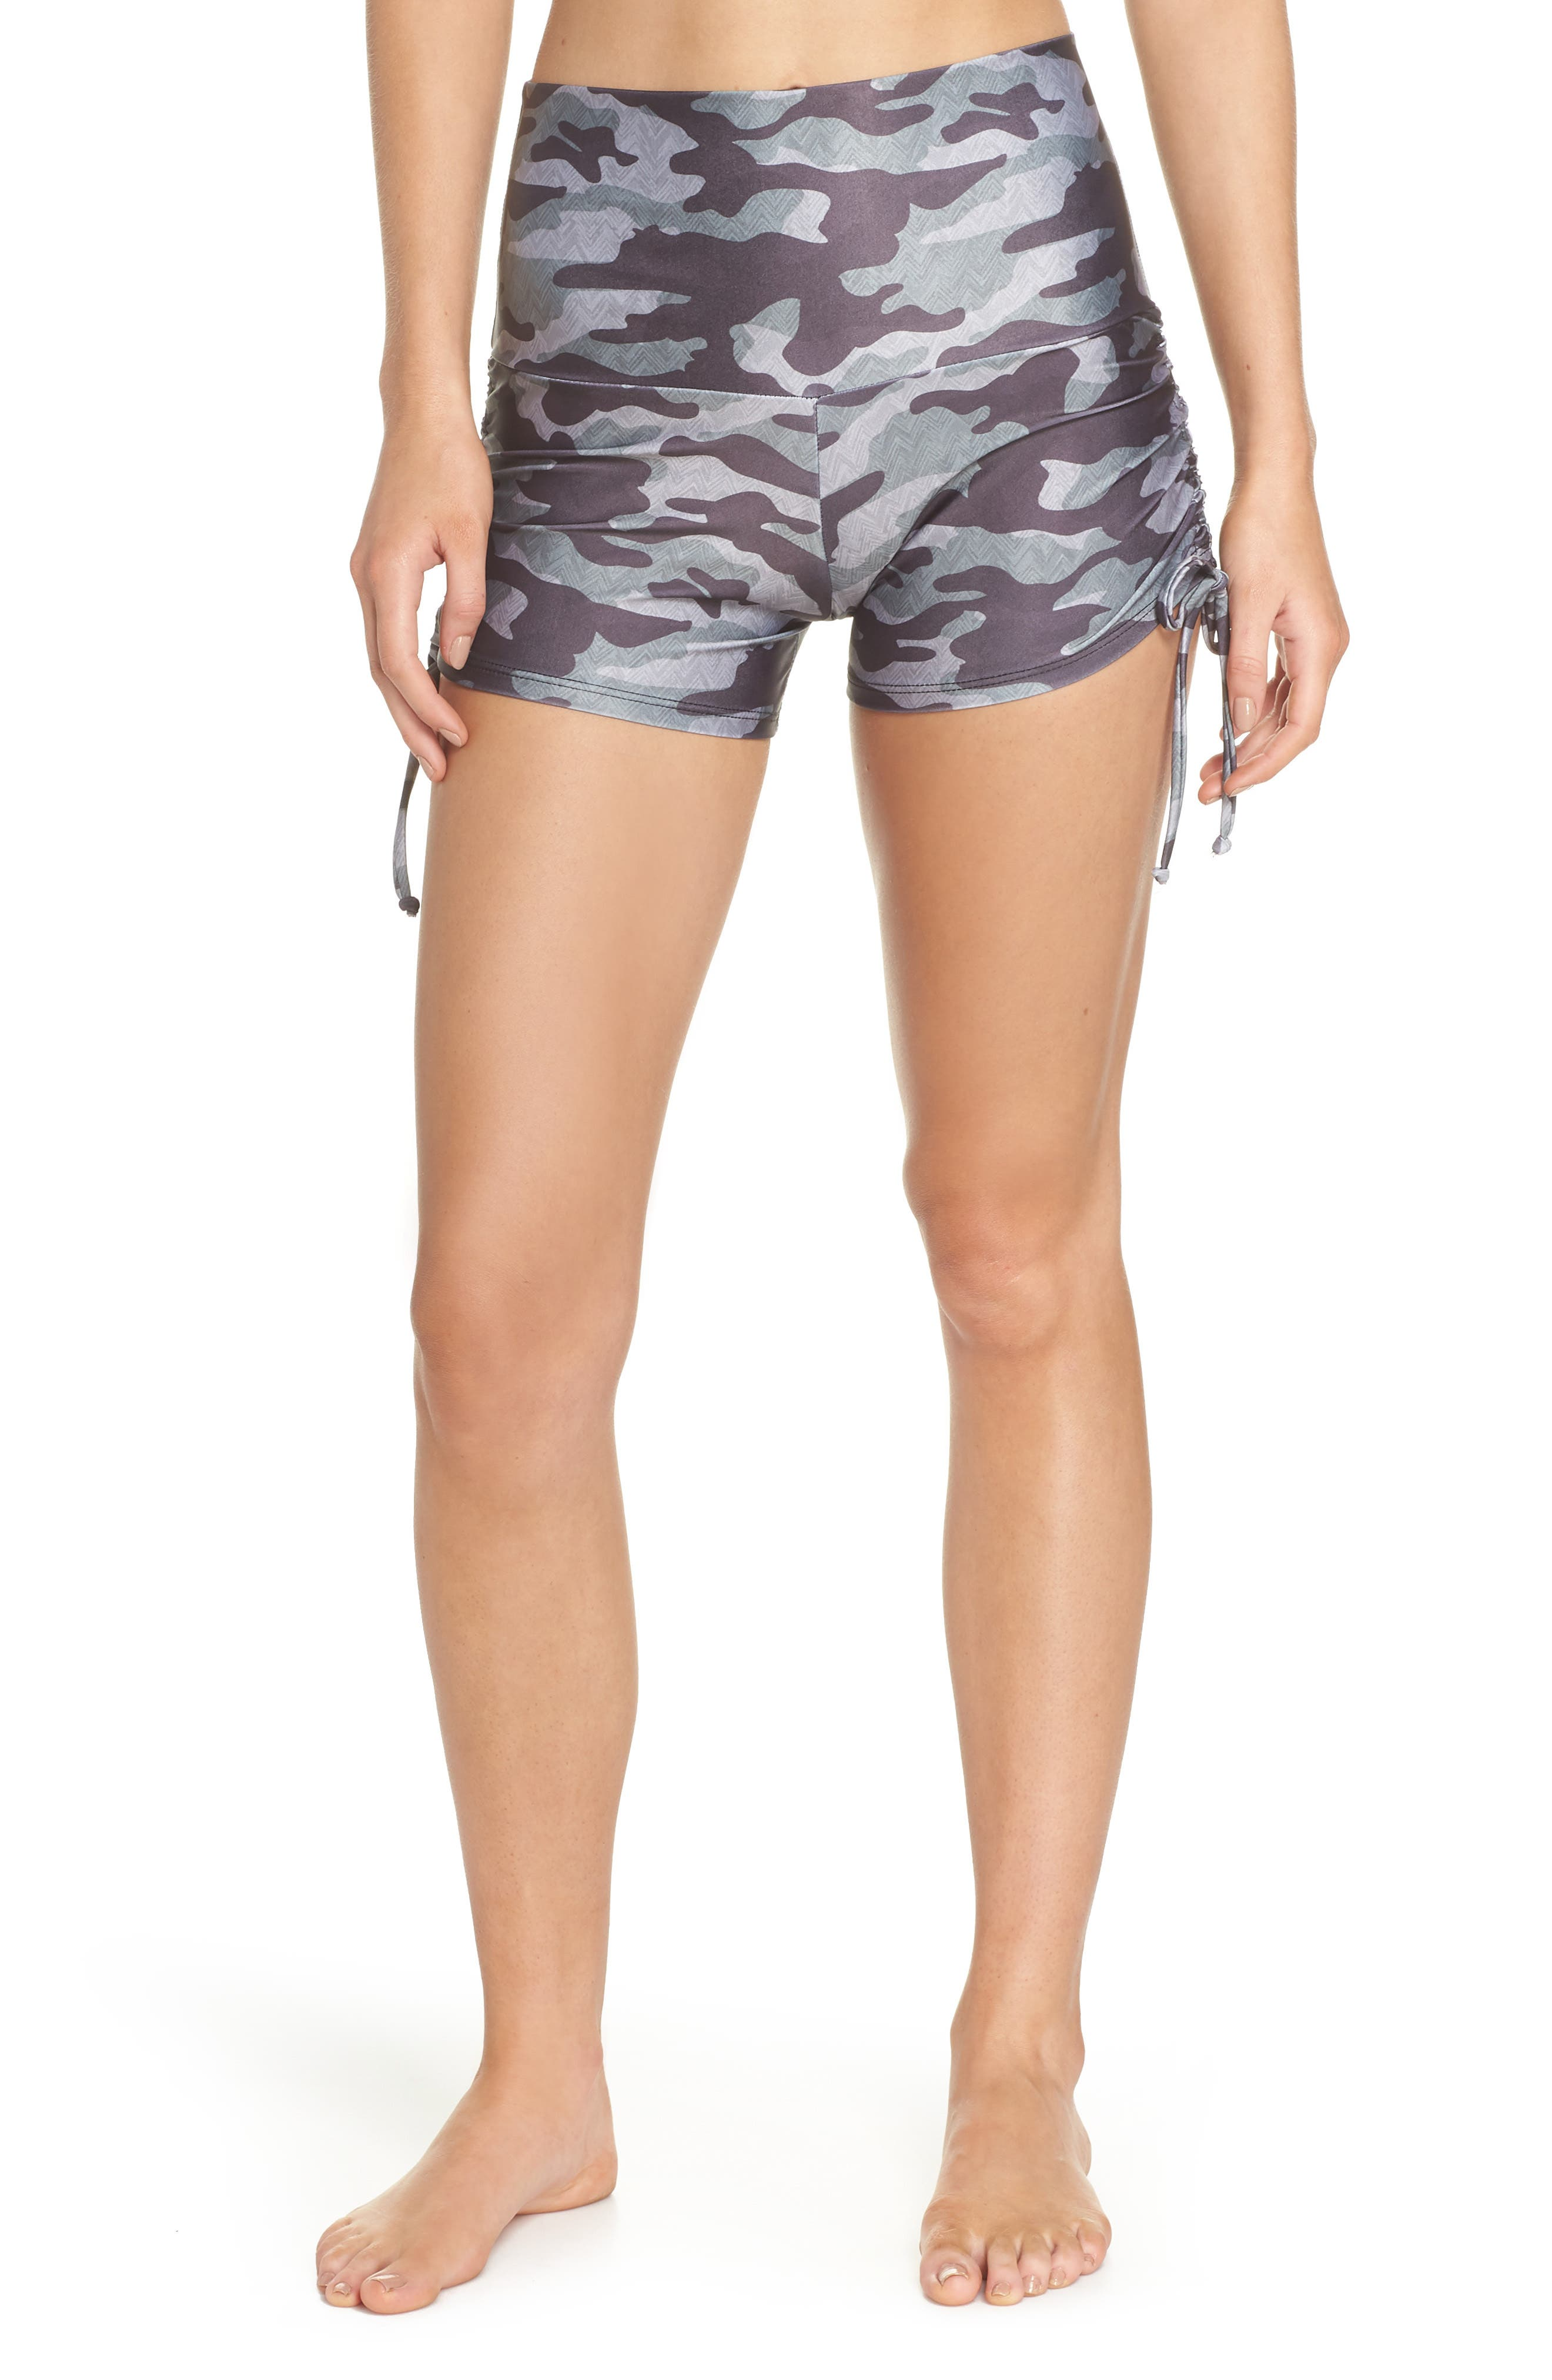 La Coqueta Swim Bottoms,                         Main,                         color, Distressed Camo